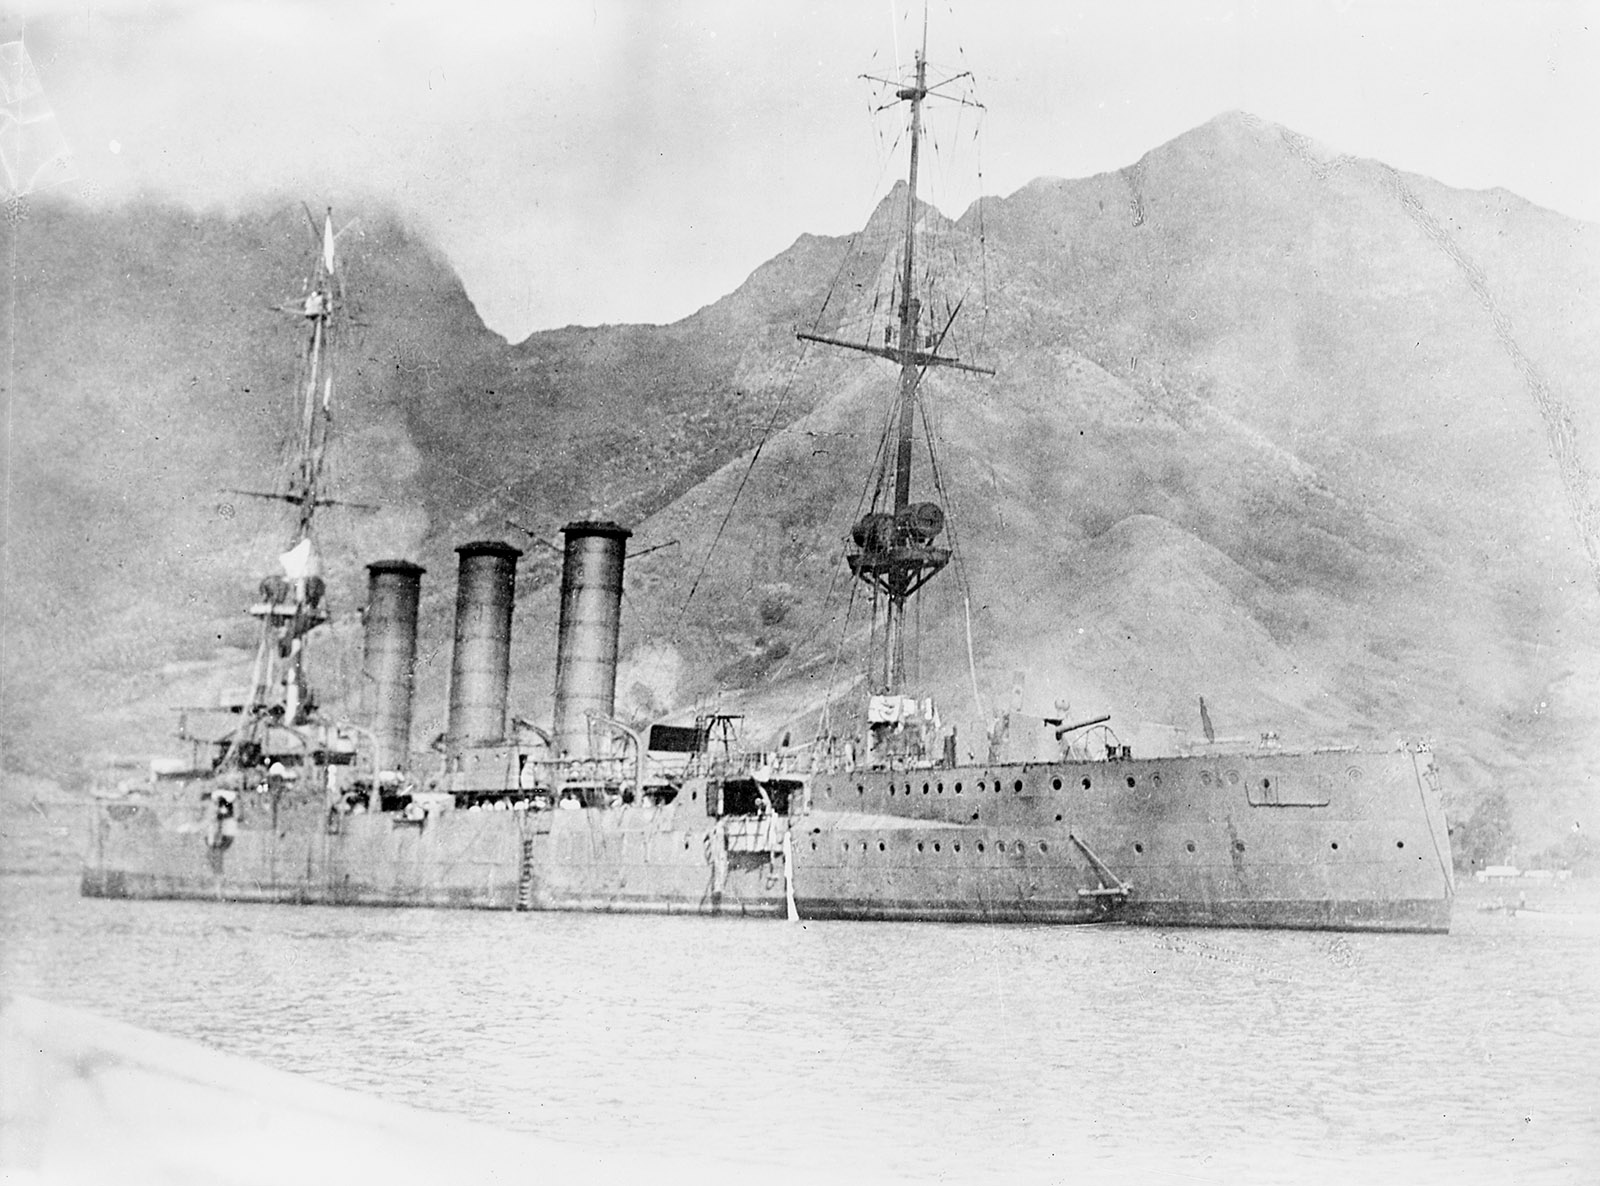 The German cruiser SMS Dresden flying a flag of surrender after being attacked by British ships off coast of Robinson Crusoe Island, Chile, 1915